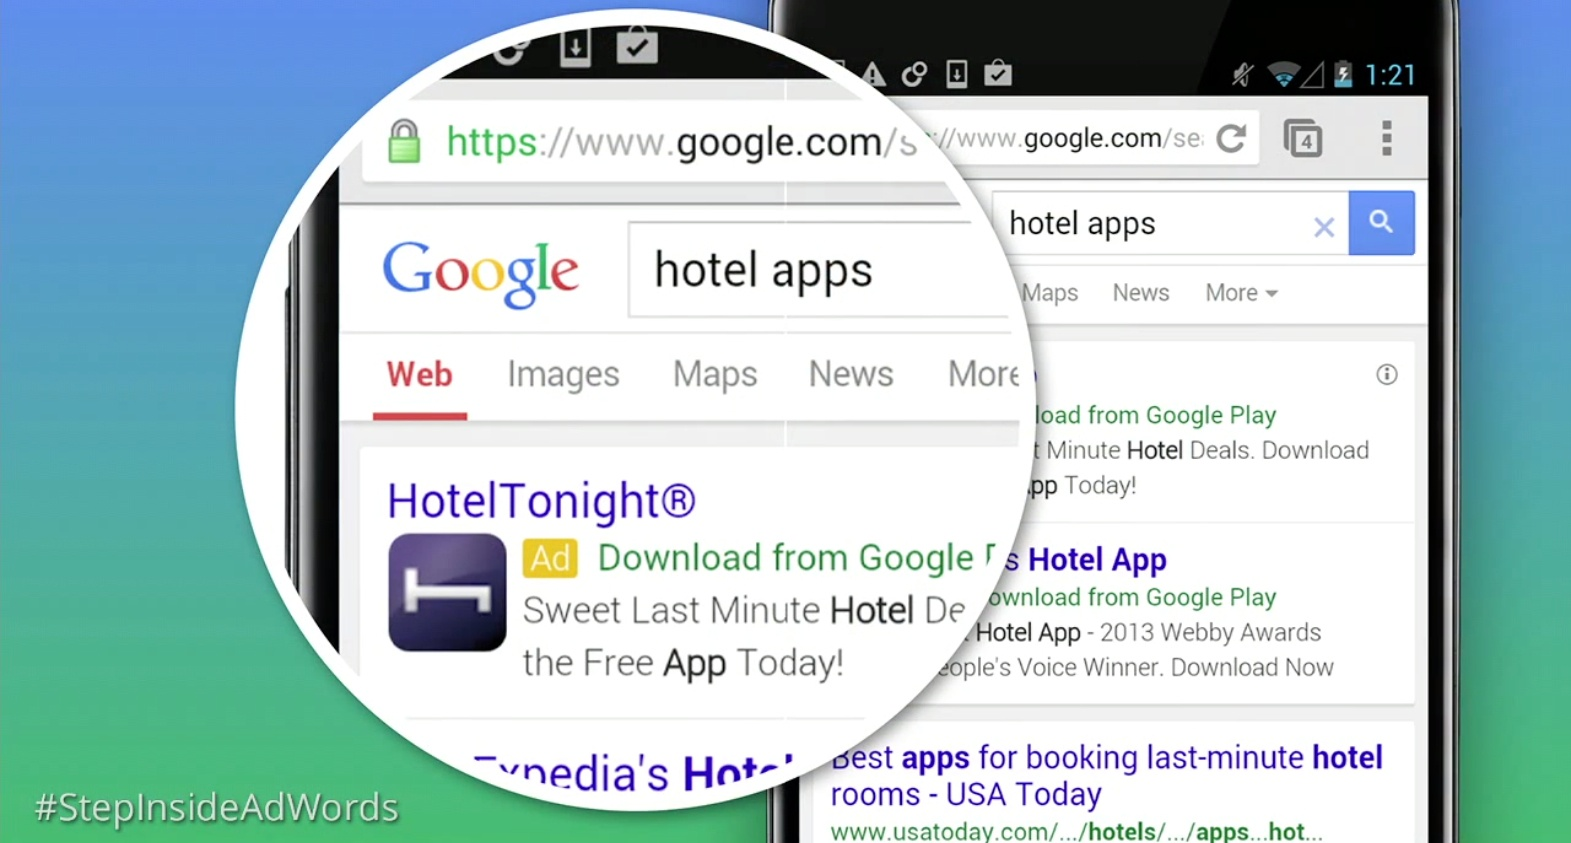 adwords mobile app install ads